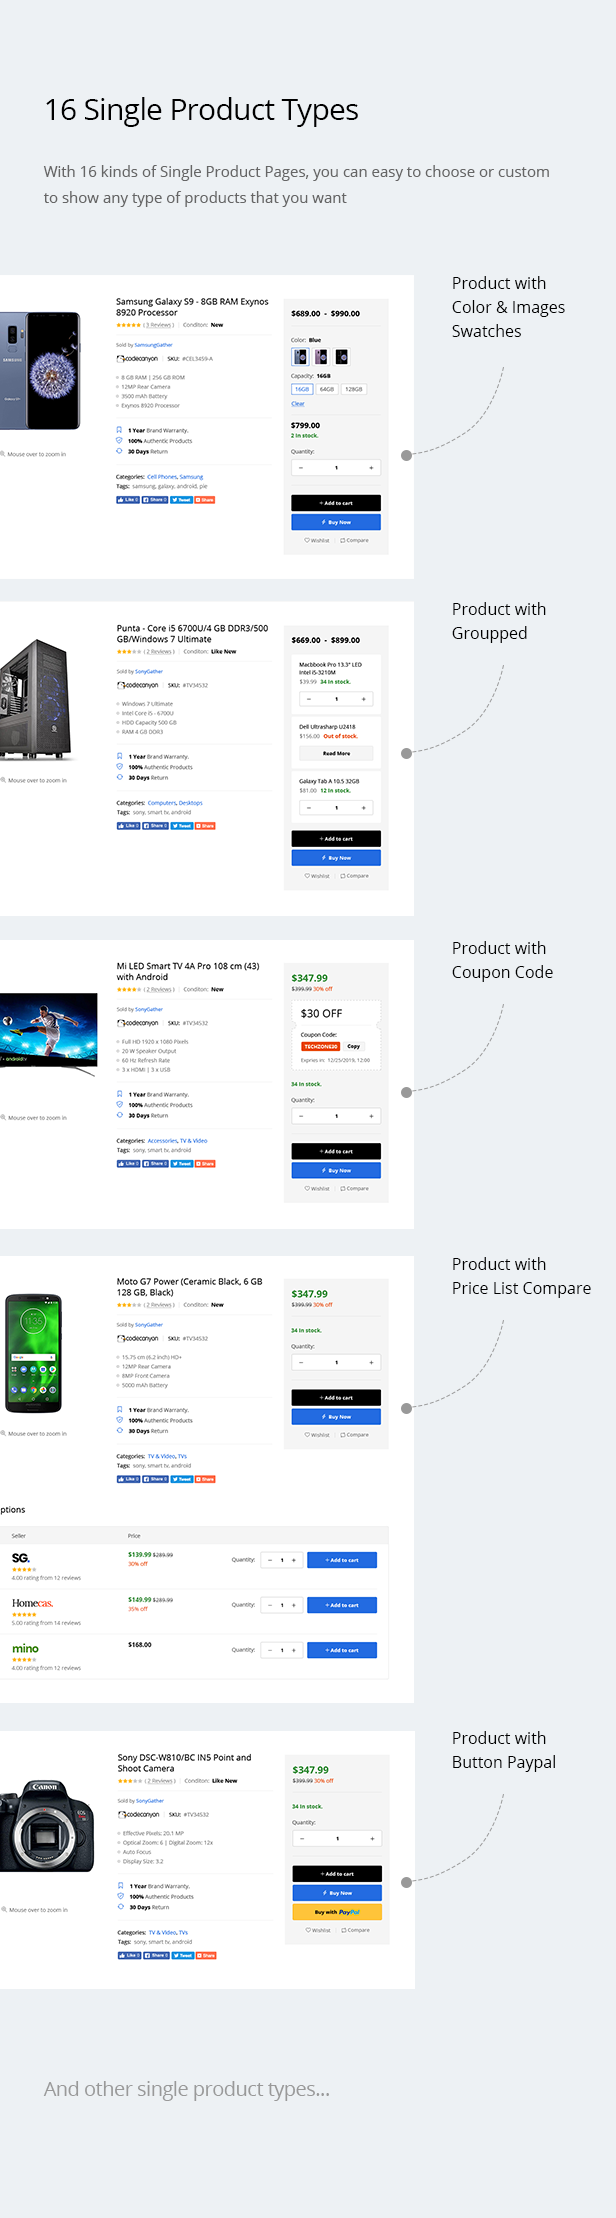 Teckoo - Electronic & Technology Marketplace eCommerce PSD Template - 10